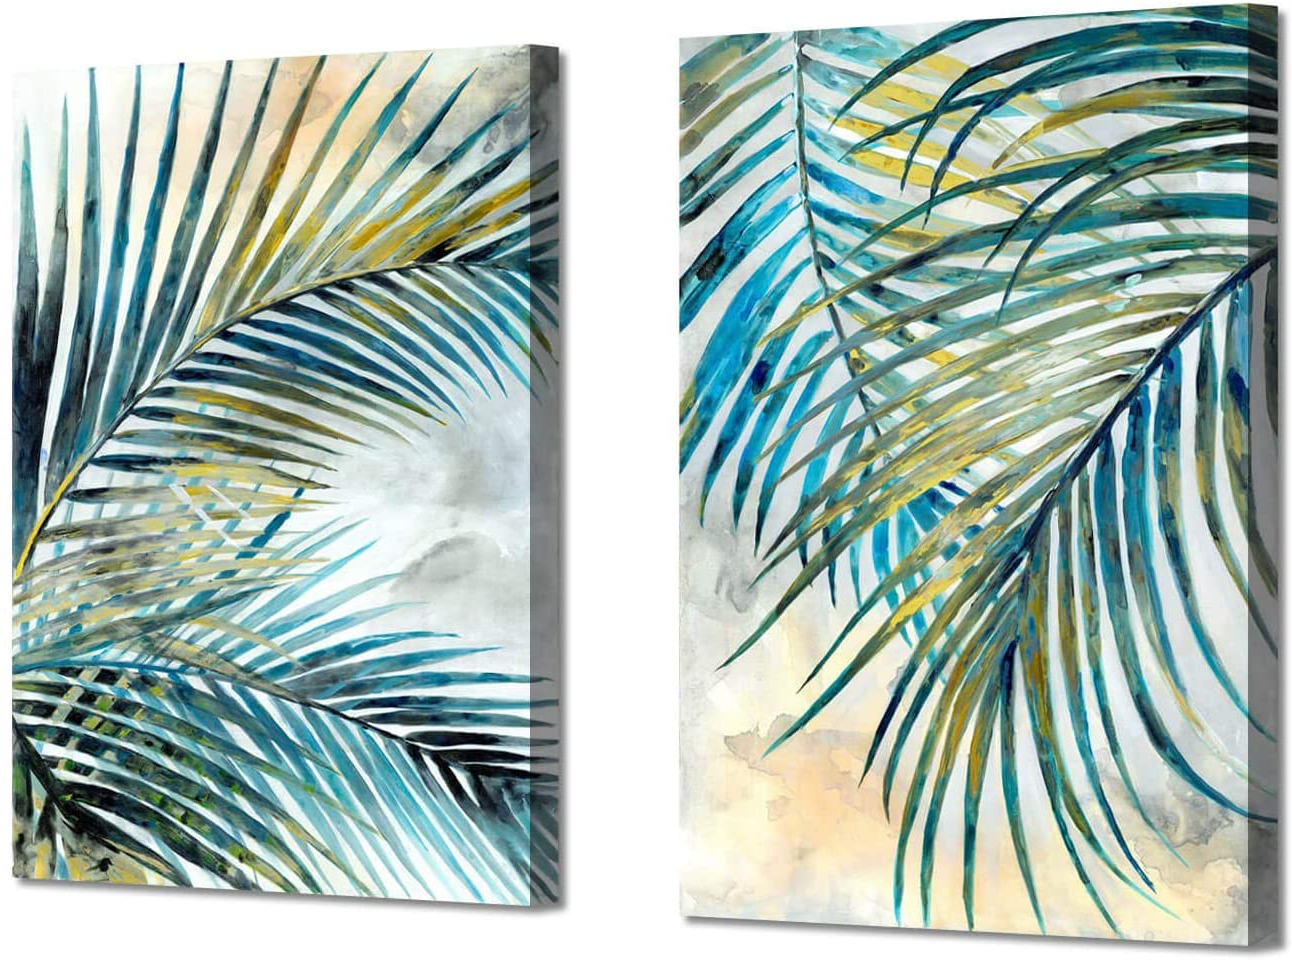 "Abstract Palm Leaves Wall Art: Tropical Ferns Leaf Graphic Art Print On Wrapped Canvas Set For Dining Rooms (12"" W X 16"" H X 2 Pcs,multi Sized) With Most Current Blended Fabric Palm Tree Wall Hangings (View 10 of 20)"